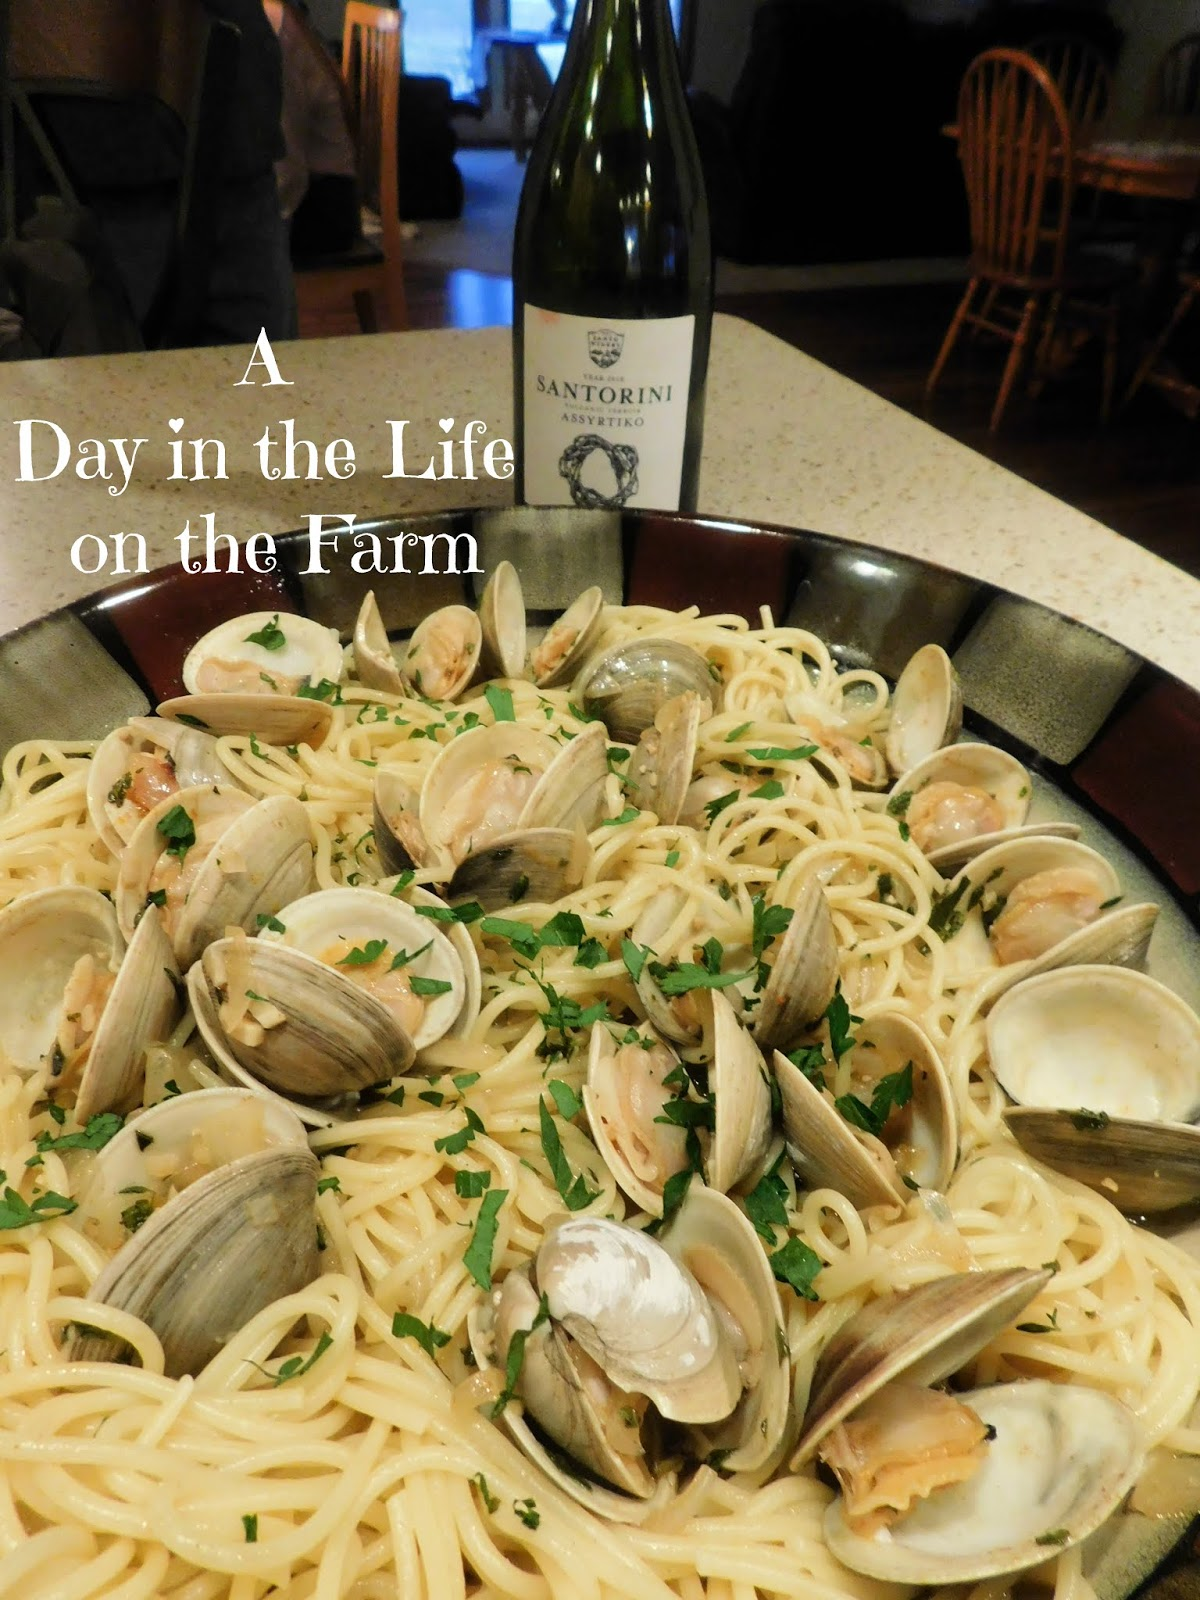 Clams Tossed in Herbs with Spaghetti